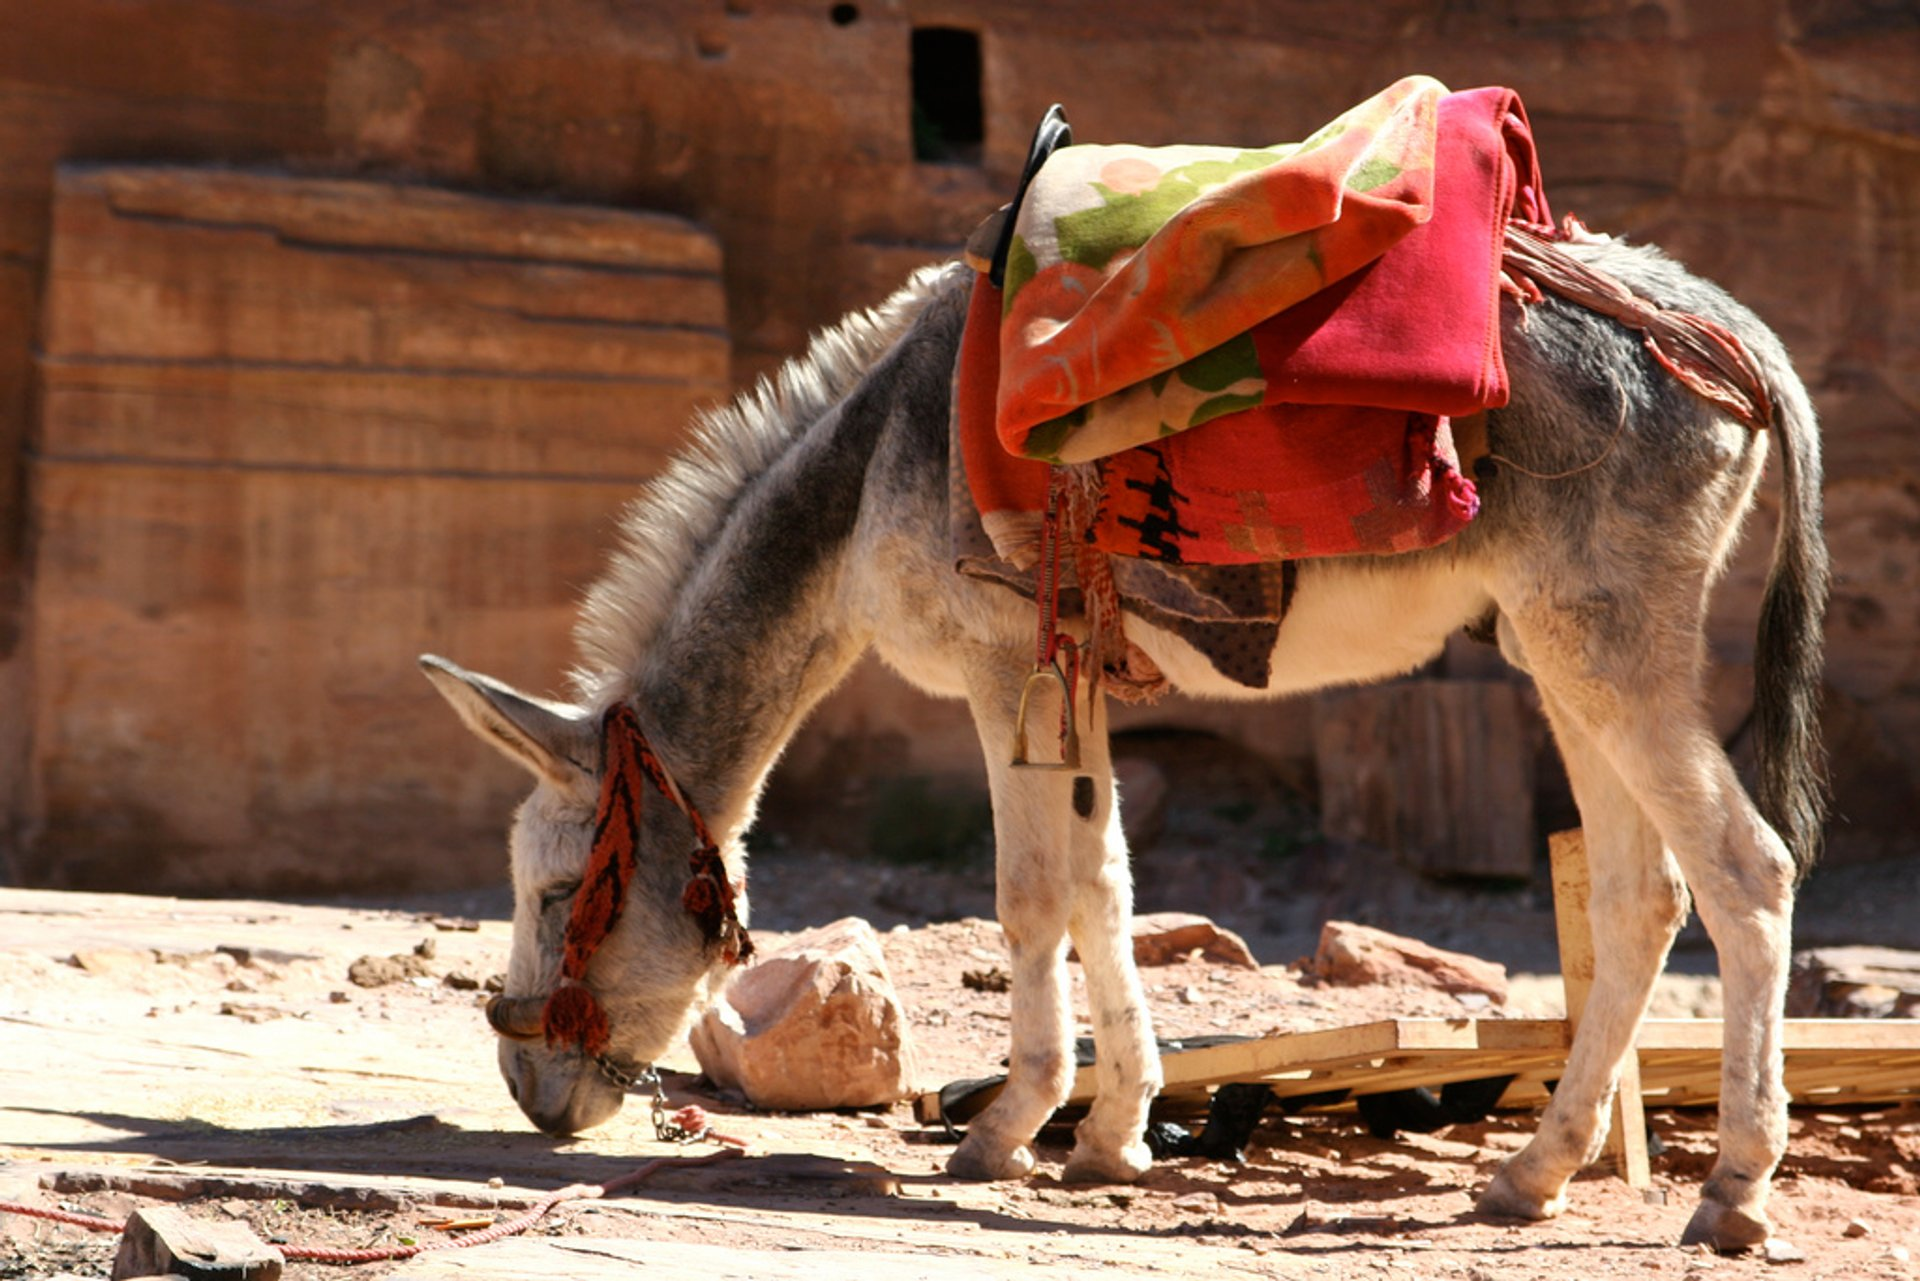 Donkey Ride in Jordan 2020 - Best Time